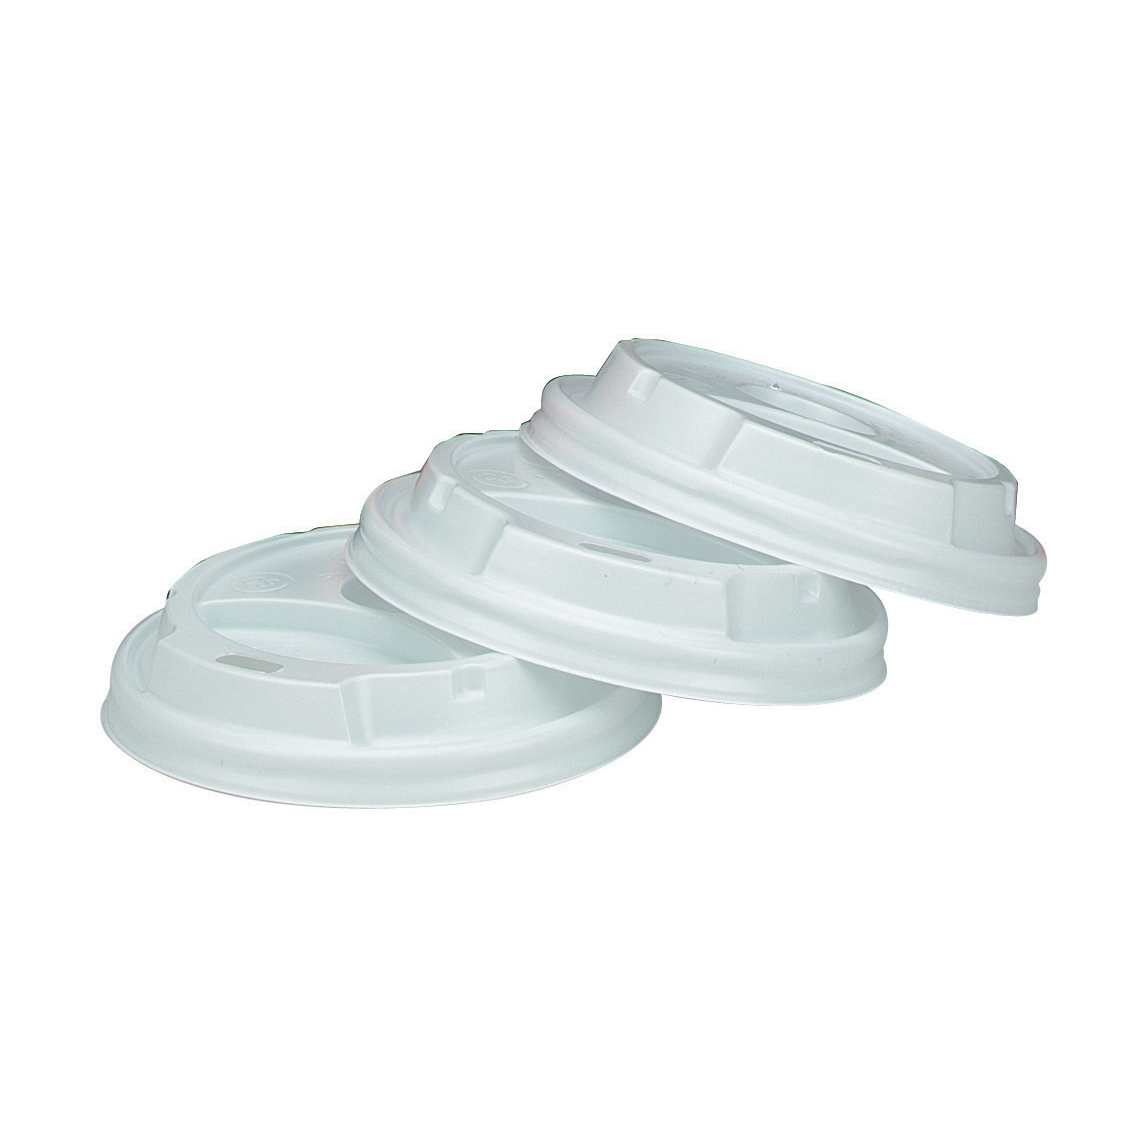 Disposable Sip Thru Lids For Use With 8oz 236ml Ripple Cups White Ref 0511054 [Pack 100]